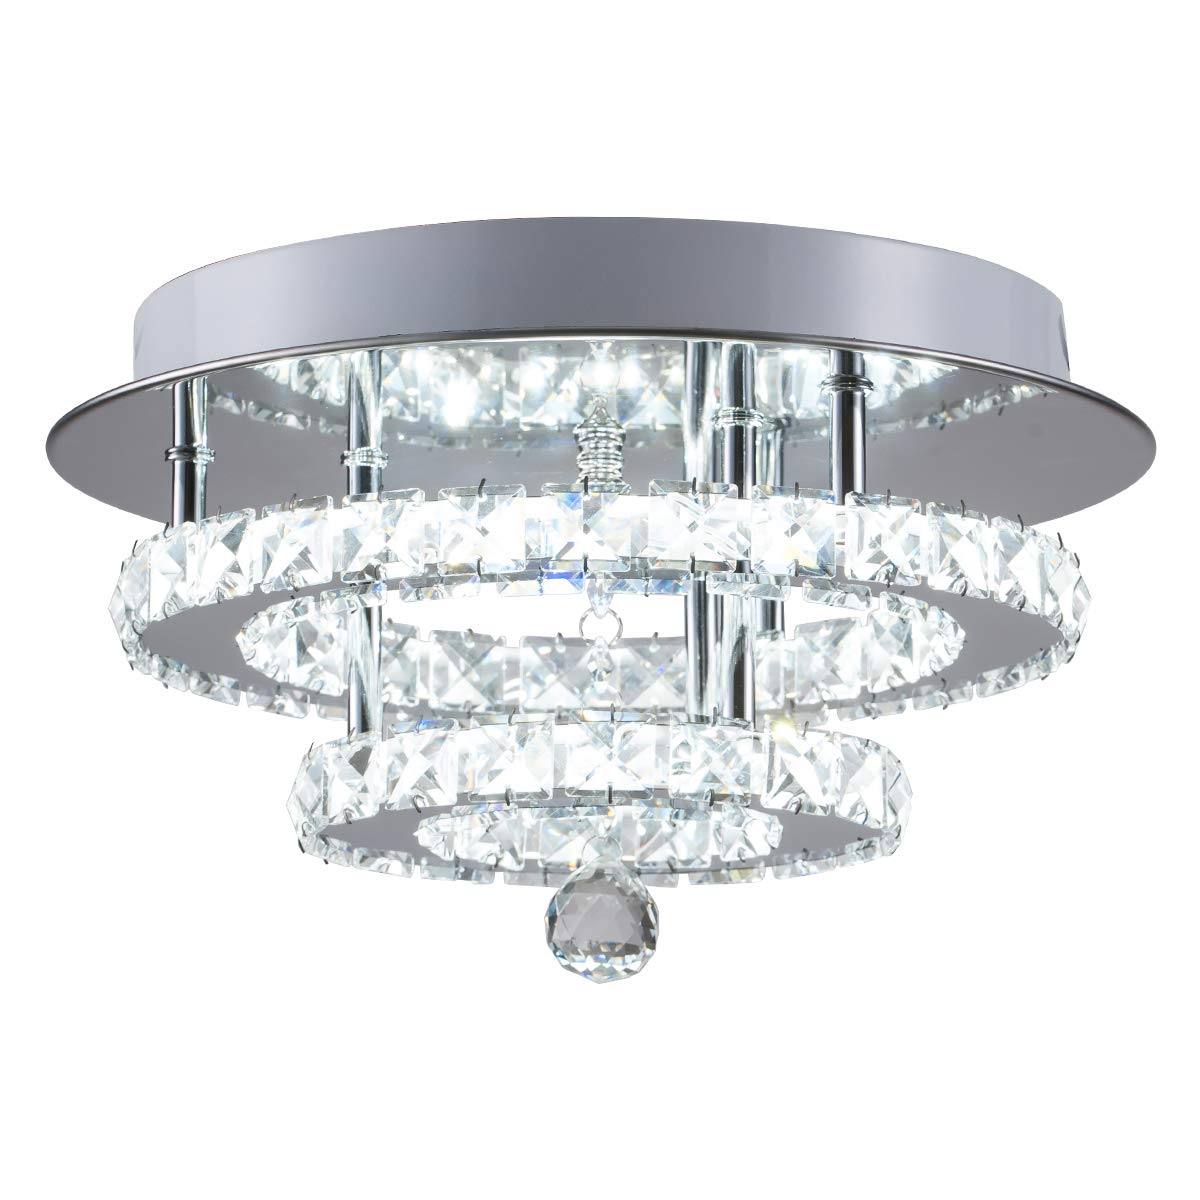 KAI Crystal Ceiling Light Flush Mount Modern Luxury Not Dimmable LED Chandelier Lamp with 6000K 30W 120LM/W SMD5730 60LEDs Lighting for Bedroom Foyer Entry Dining Room(Chrome Round, 1 Pack) by Kai